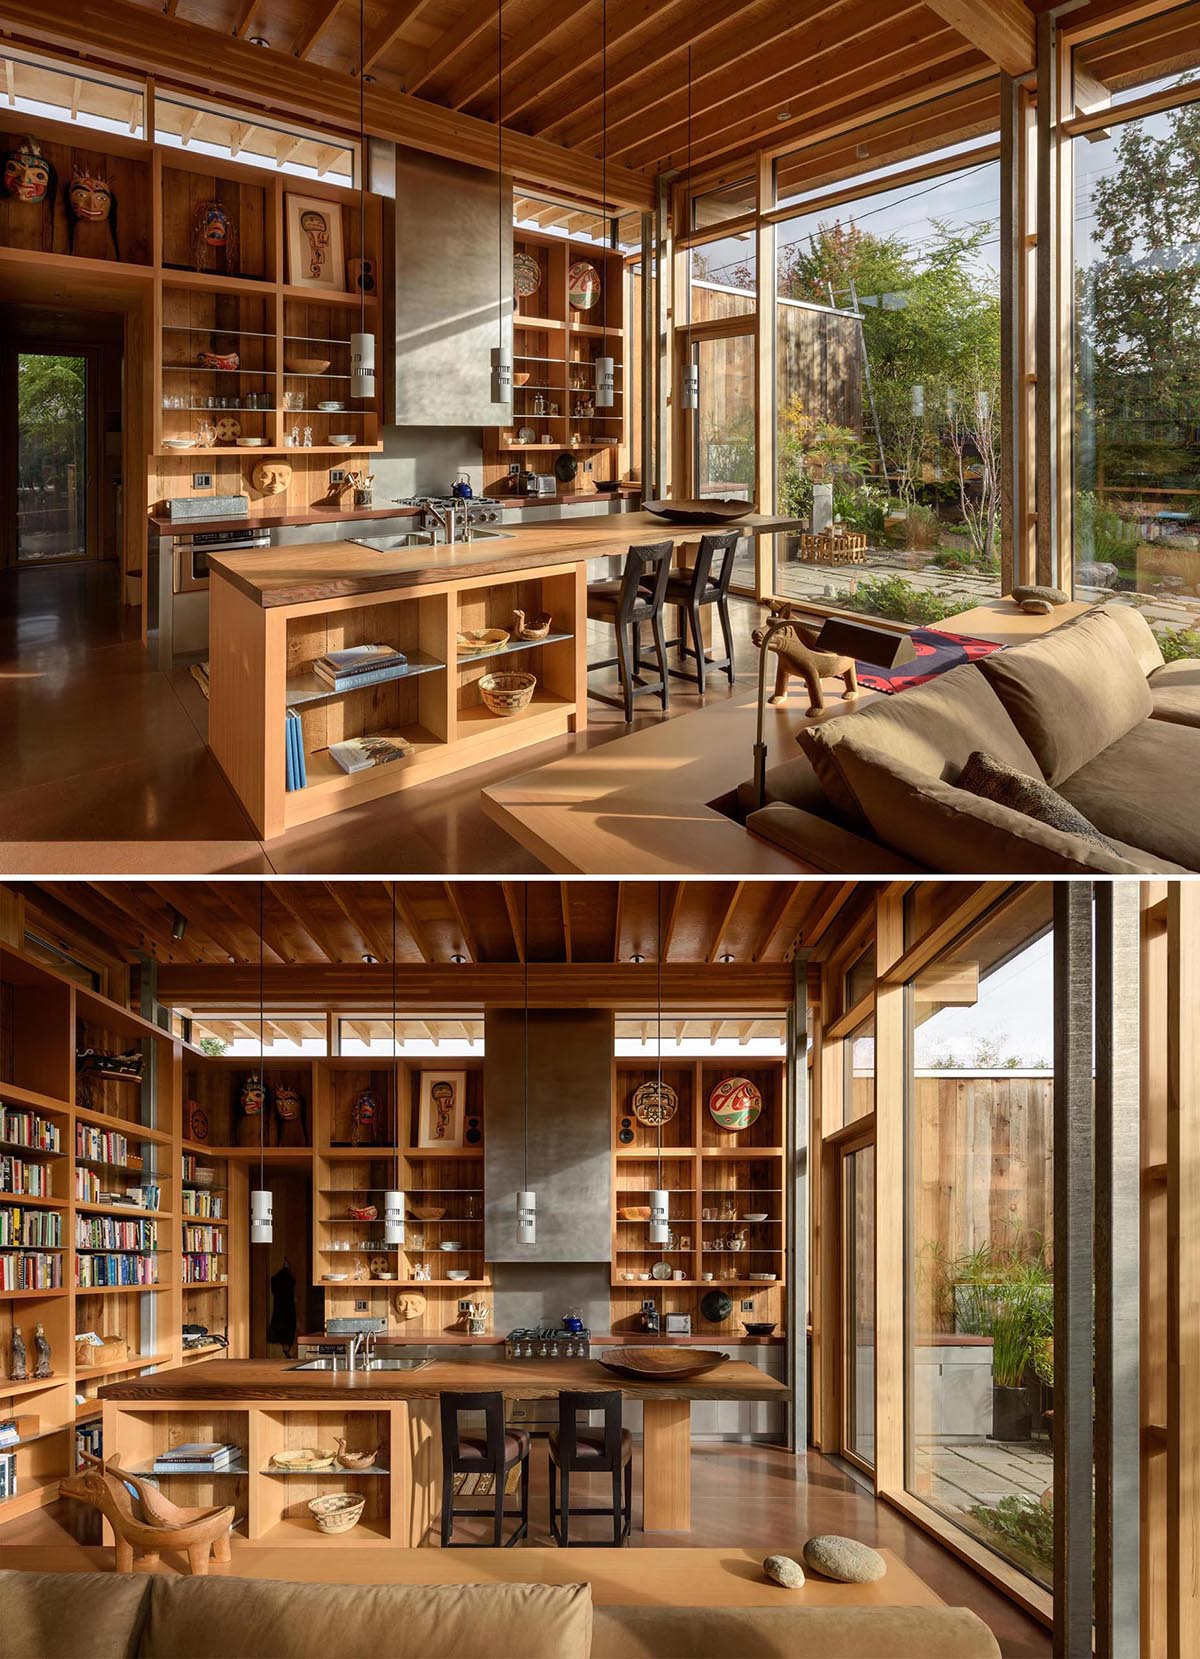 A contemporary cabin kitchen with a wood island and walls of shelving.